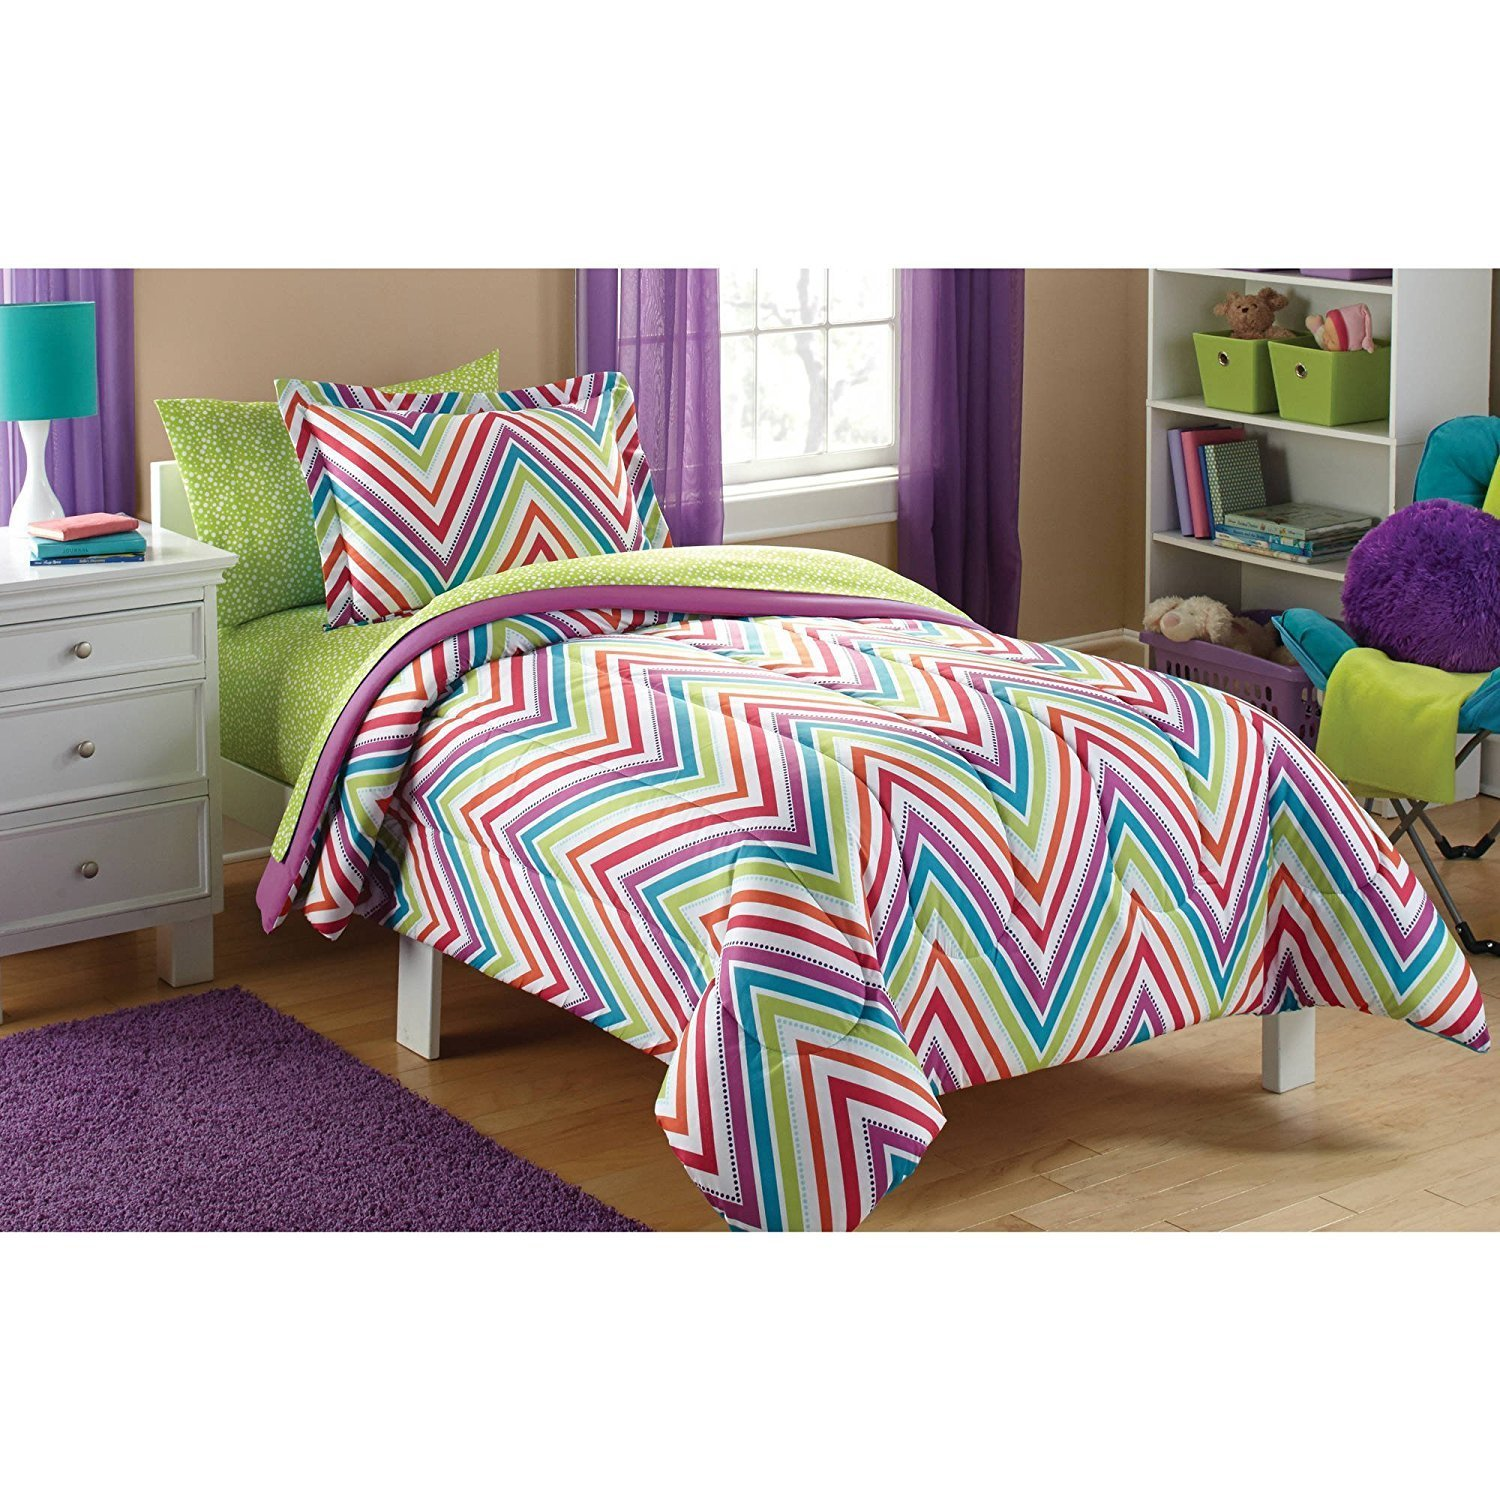 Dovedote 5 Piece Reversible Comforter and Matching Sheet Set for All Seasons, Twin , Chevron